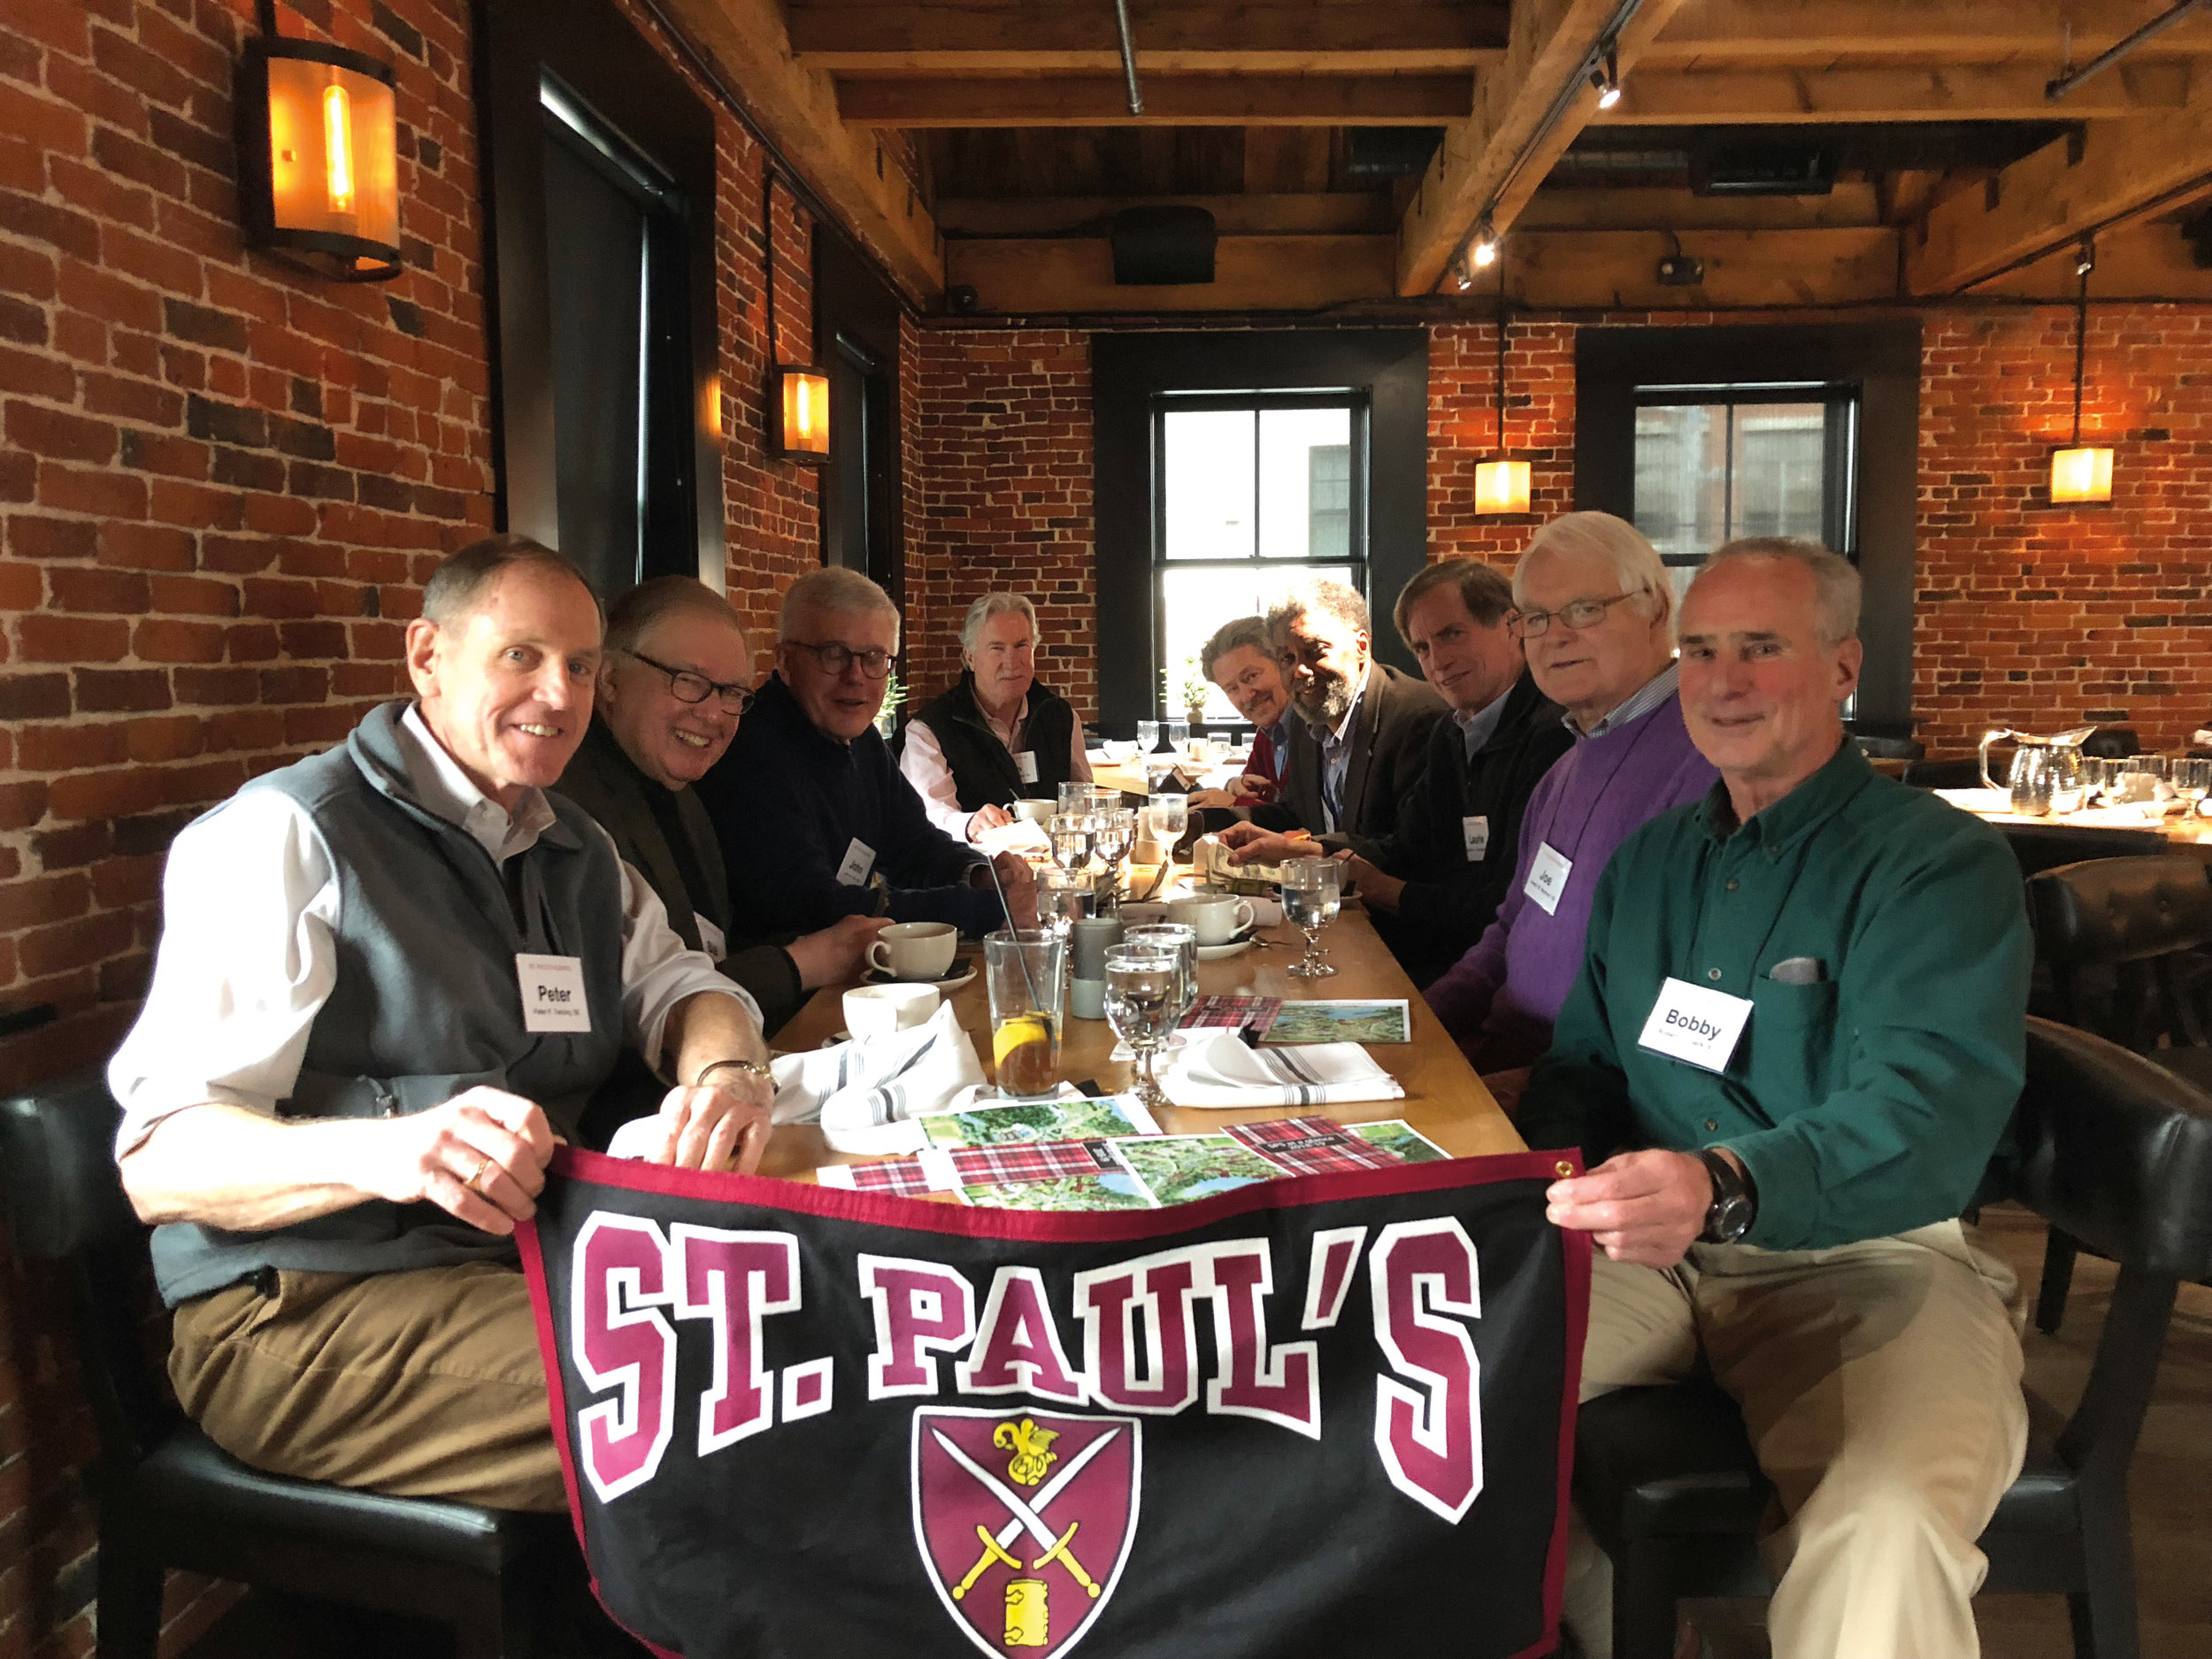 (L. to r.) Peter Twining '65, Bill Schwind '60, John Rice '65, Ian Gillespie '69, Dave Eklund '65, Bob Hall '65, Laurie Brengle '65, Joe Mechem '60, and Bobby Clark '61 in Newburyport, Mass.